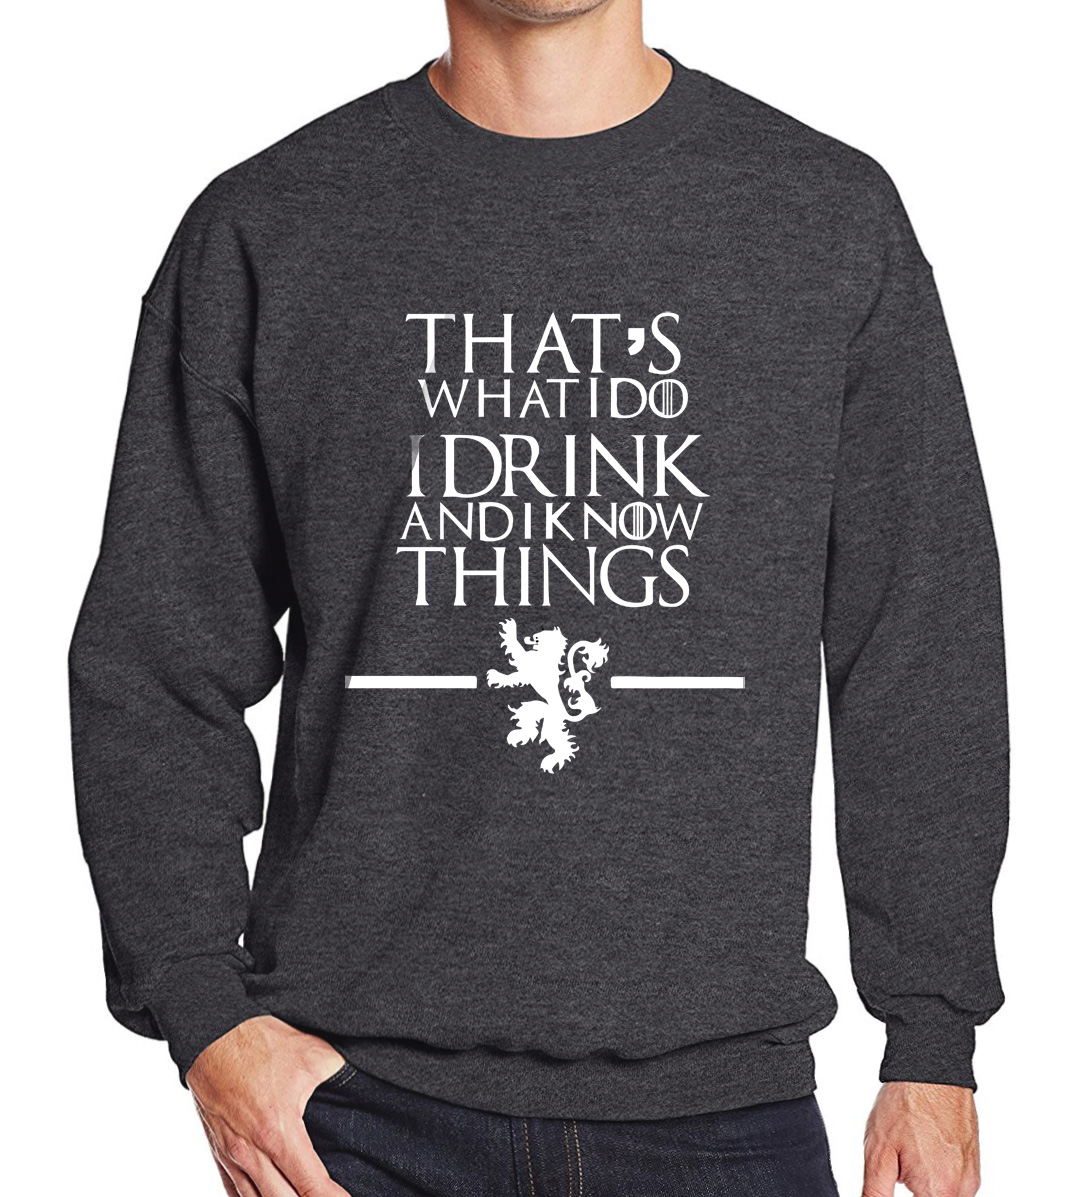 Sweatshirt men 2019 hoodies Game of Thrones men's sportswear That's What I Do I Drink and I know Things printed k-pop top brand